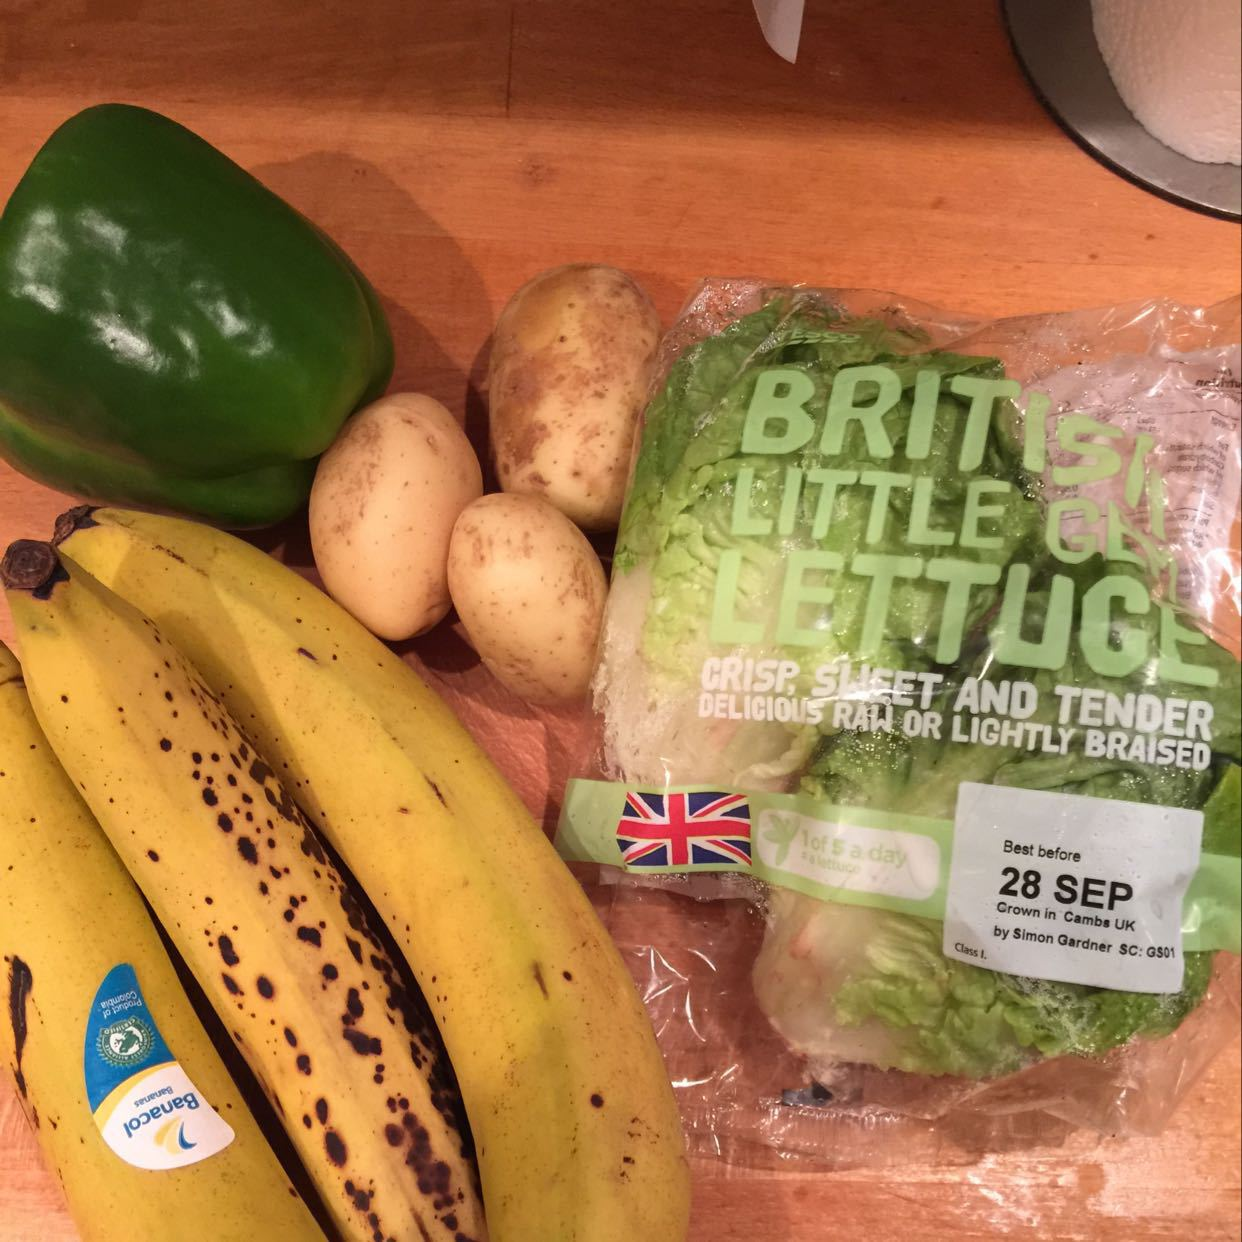 Bananas, gem lettuce, potatoes and a green pepper.